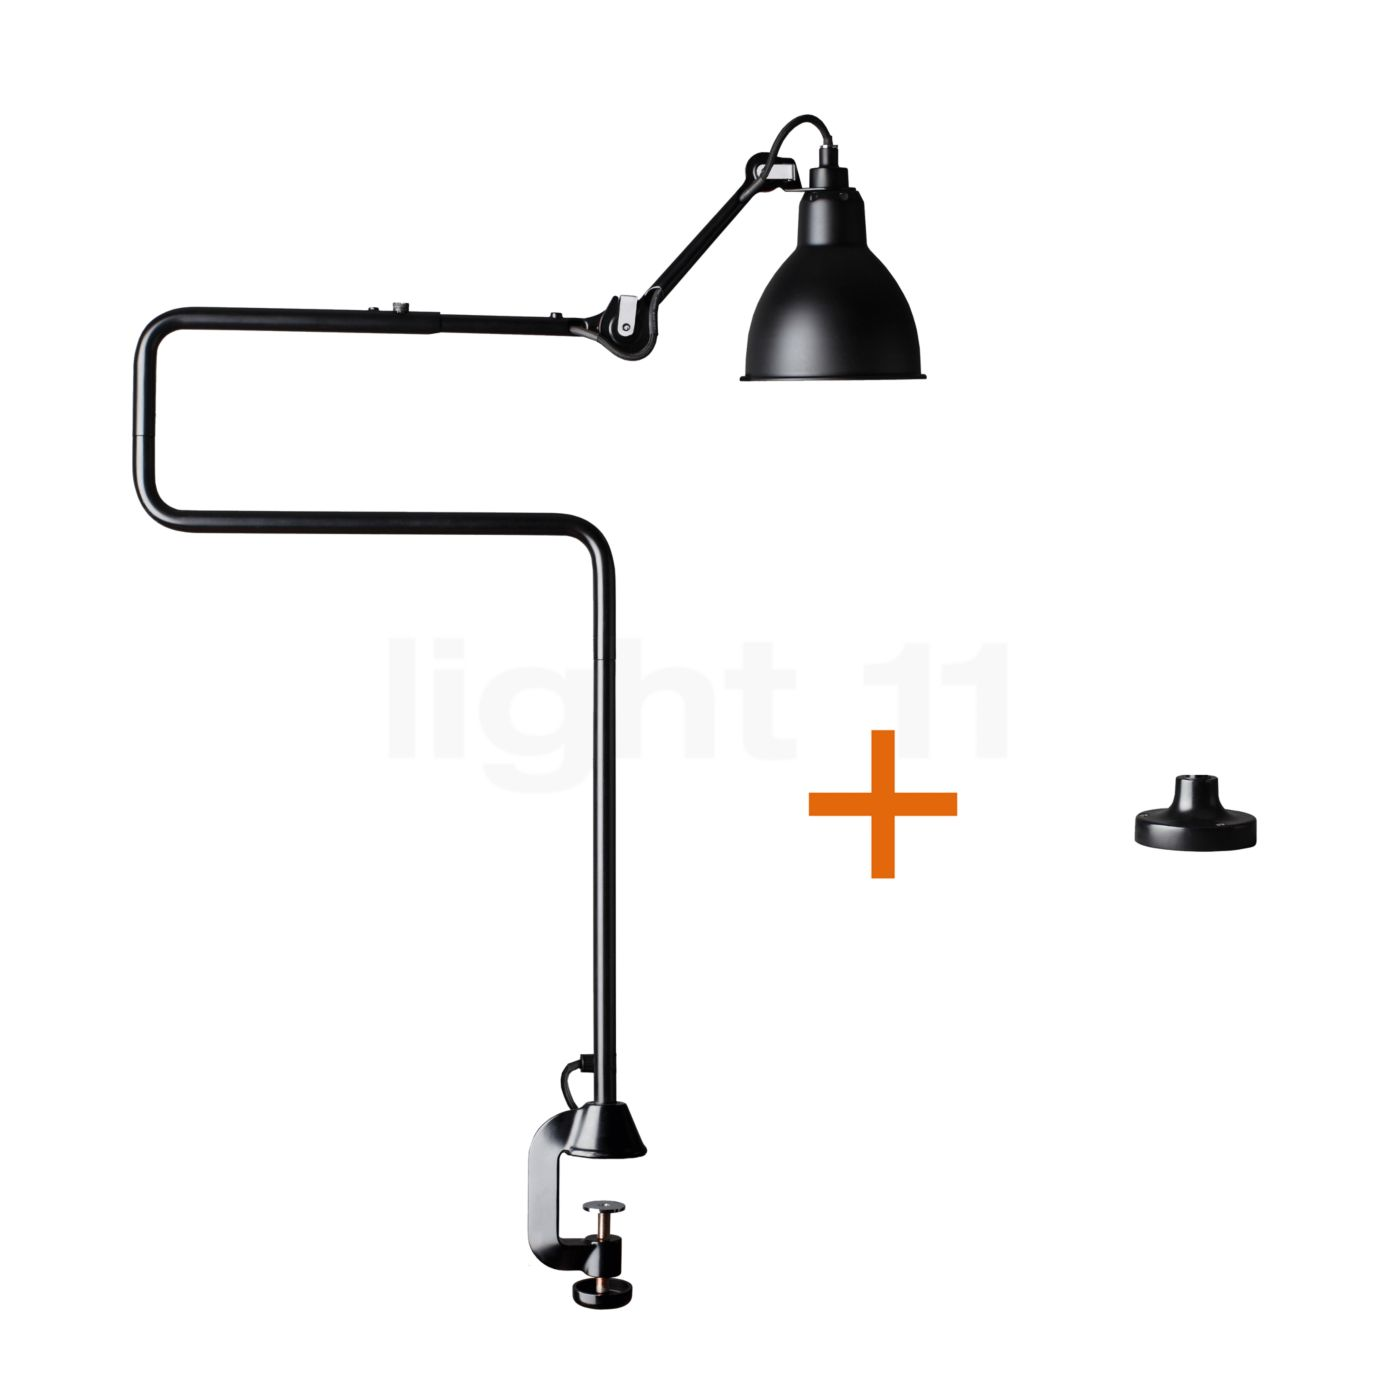 dcw lampe gras no 211 311 table lamp with table mount. Black Bedroom Furniture Sets. Home Design Ideas